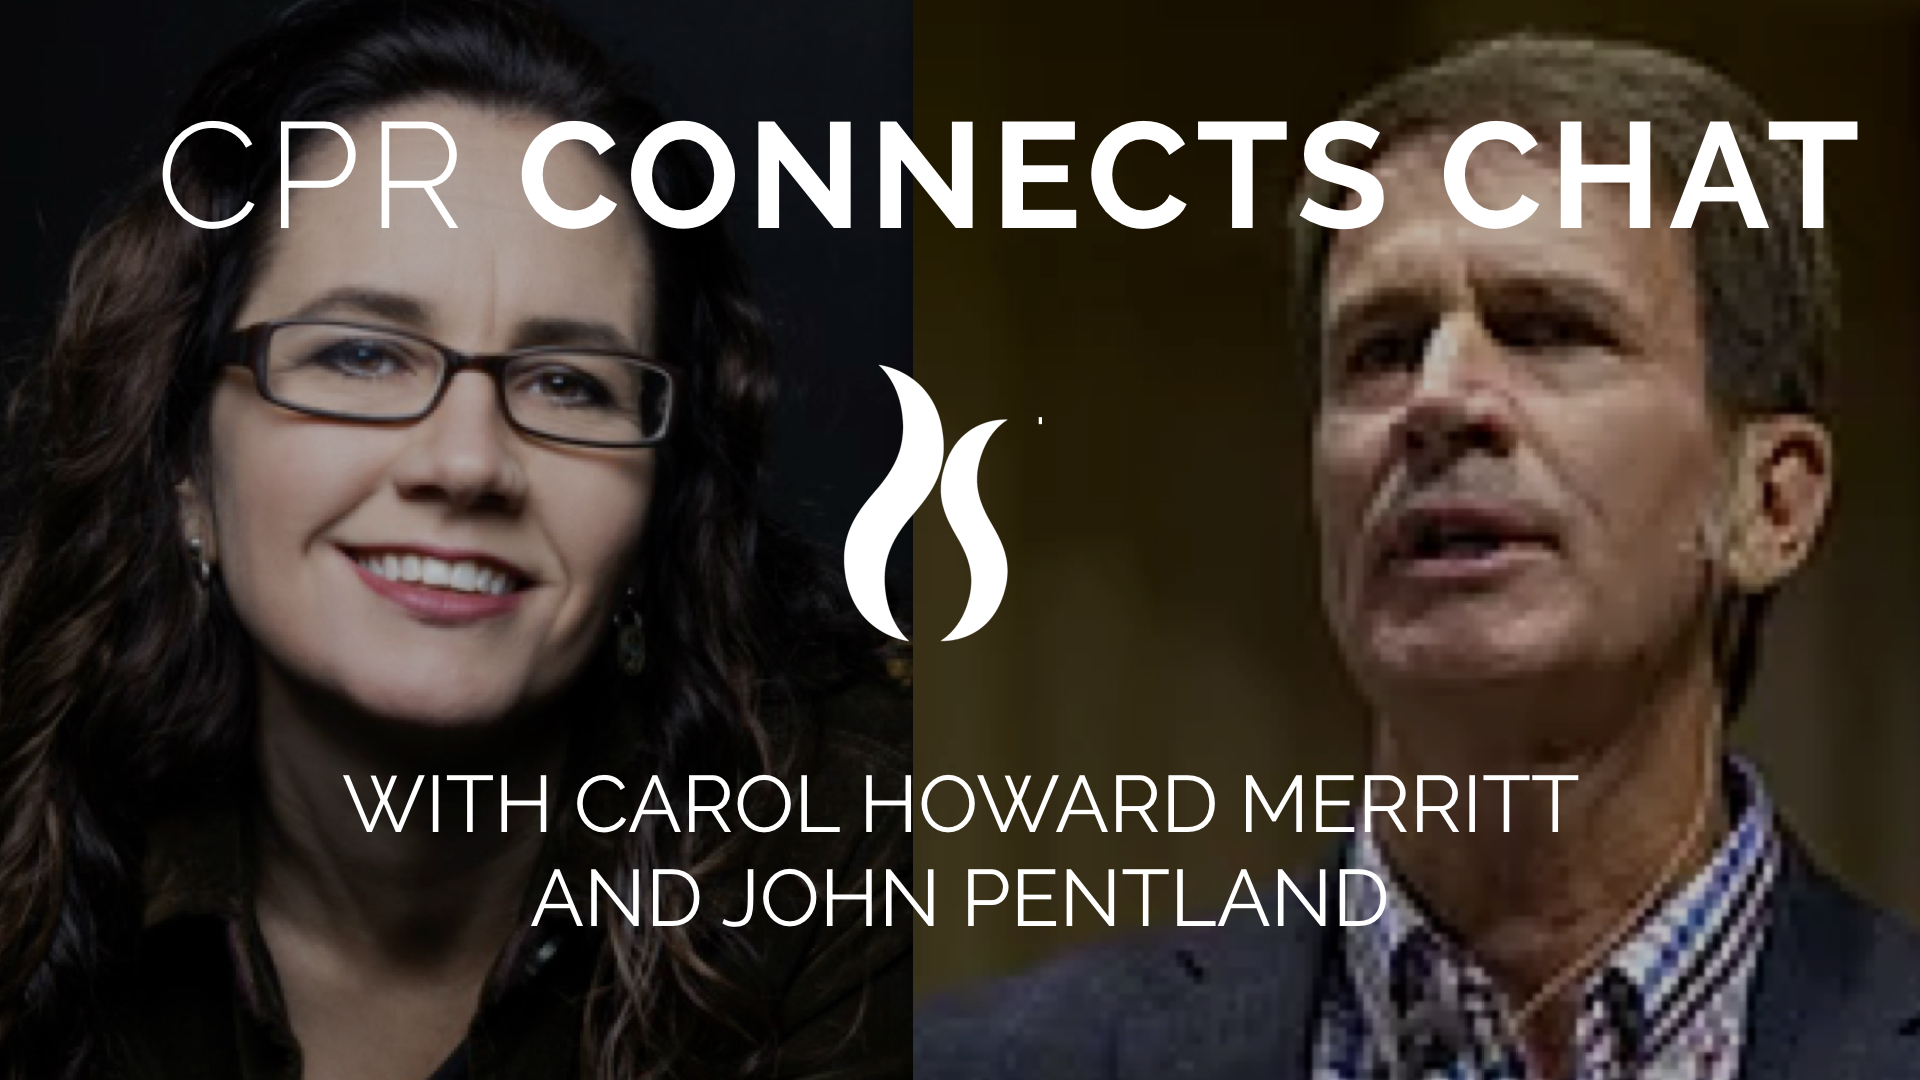 Join John and Carol Howard Merritt for a live web chat on March 31st at noon Eastern. Click here to RSVP.